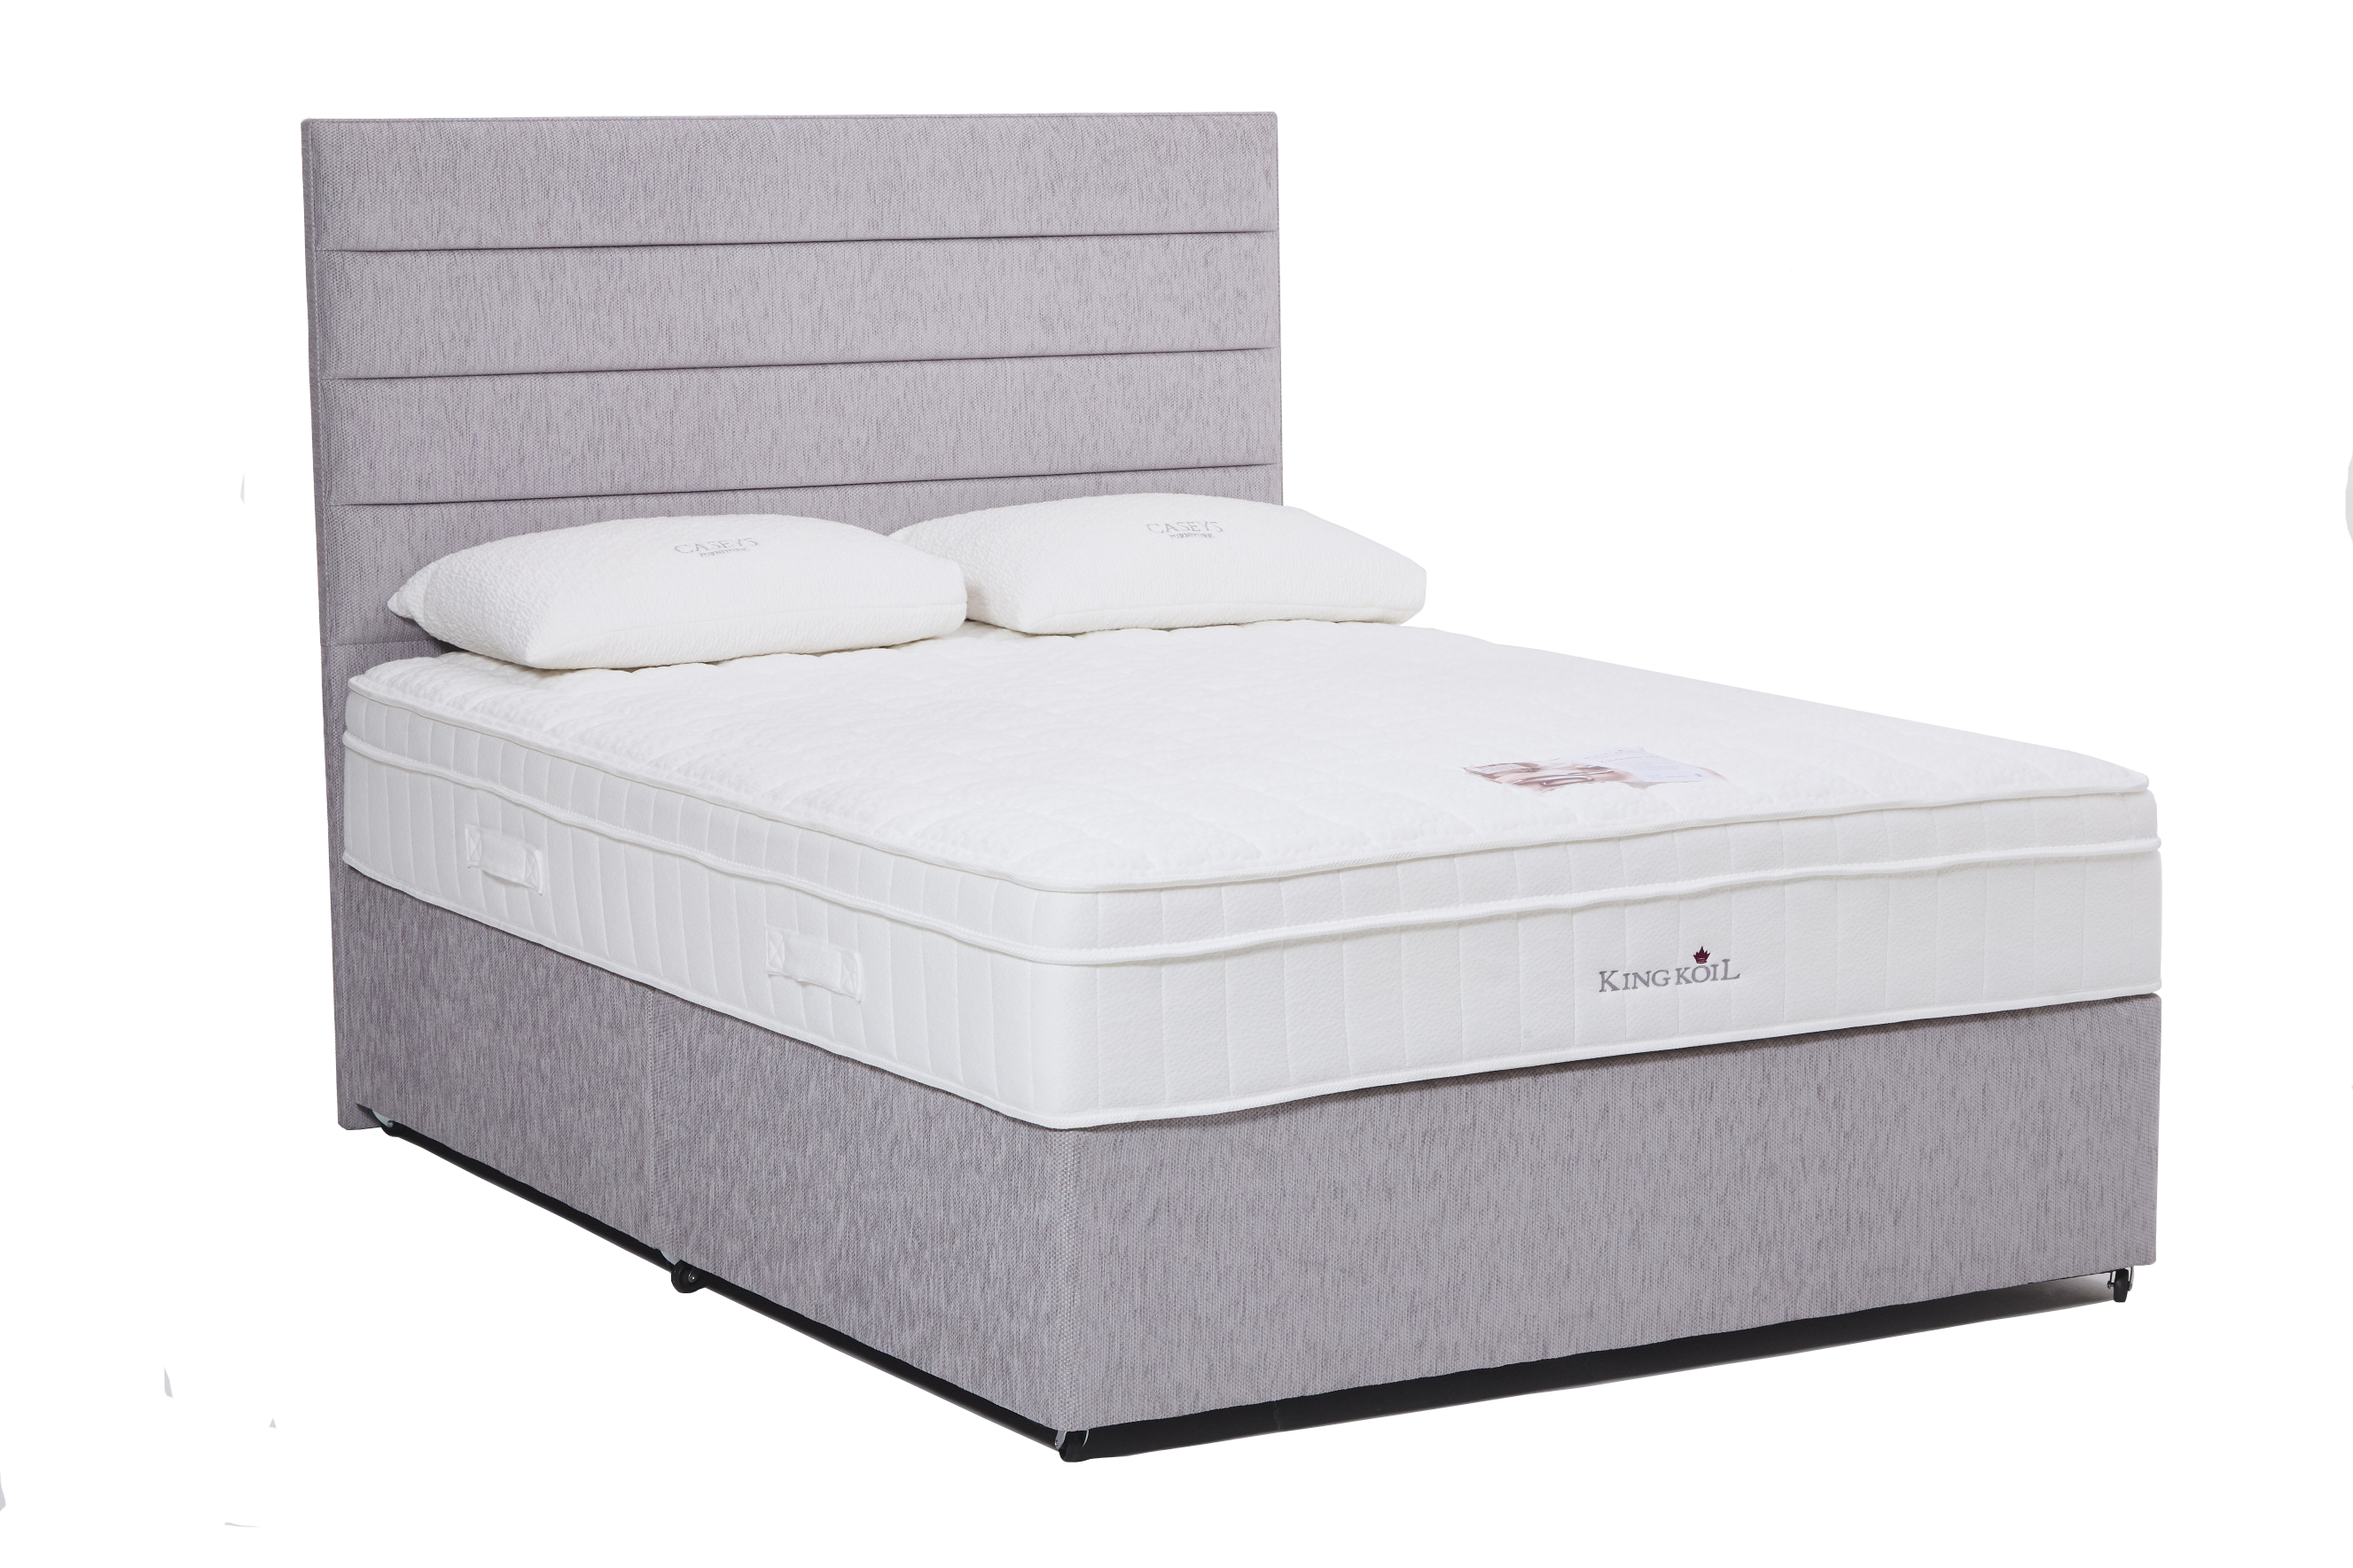 King Koil Celebration 1400 Mattress and Divan